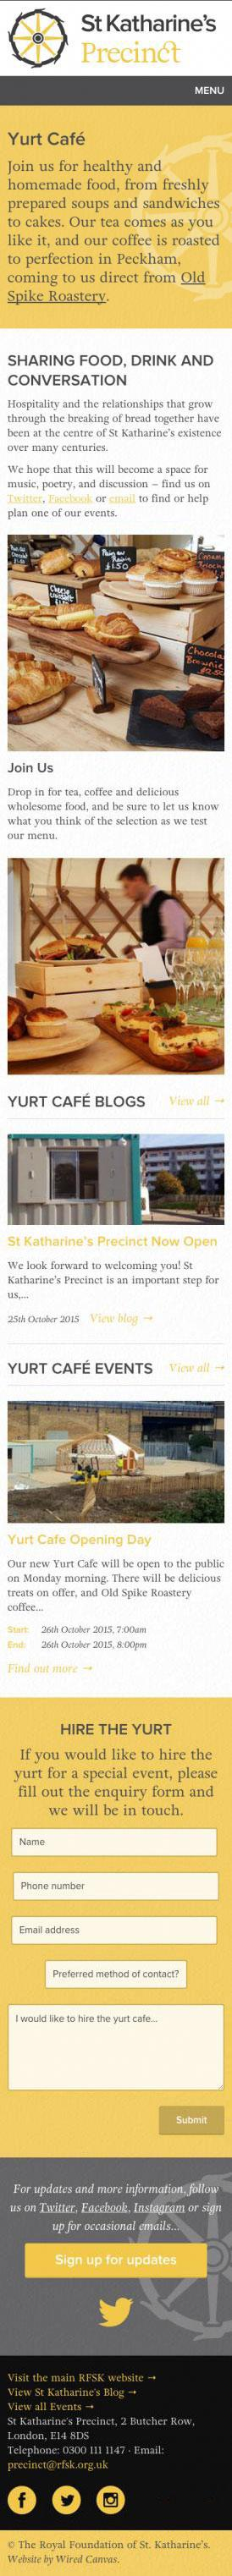 St Katharine's Precinct Mobile Website Design